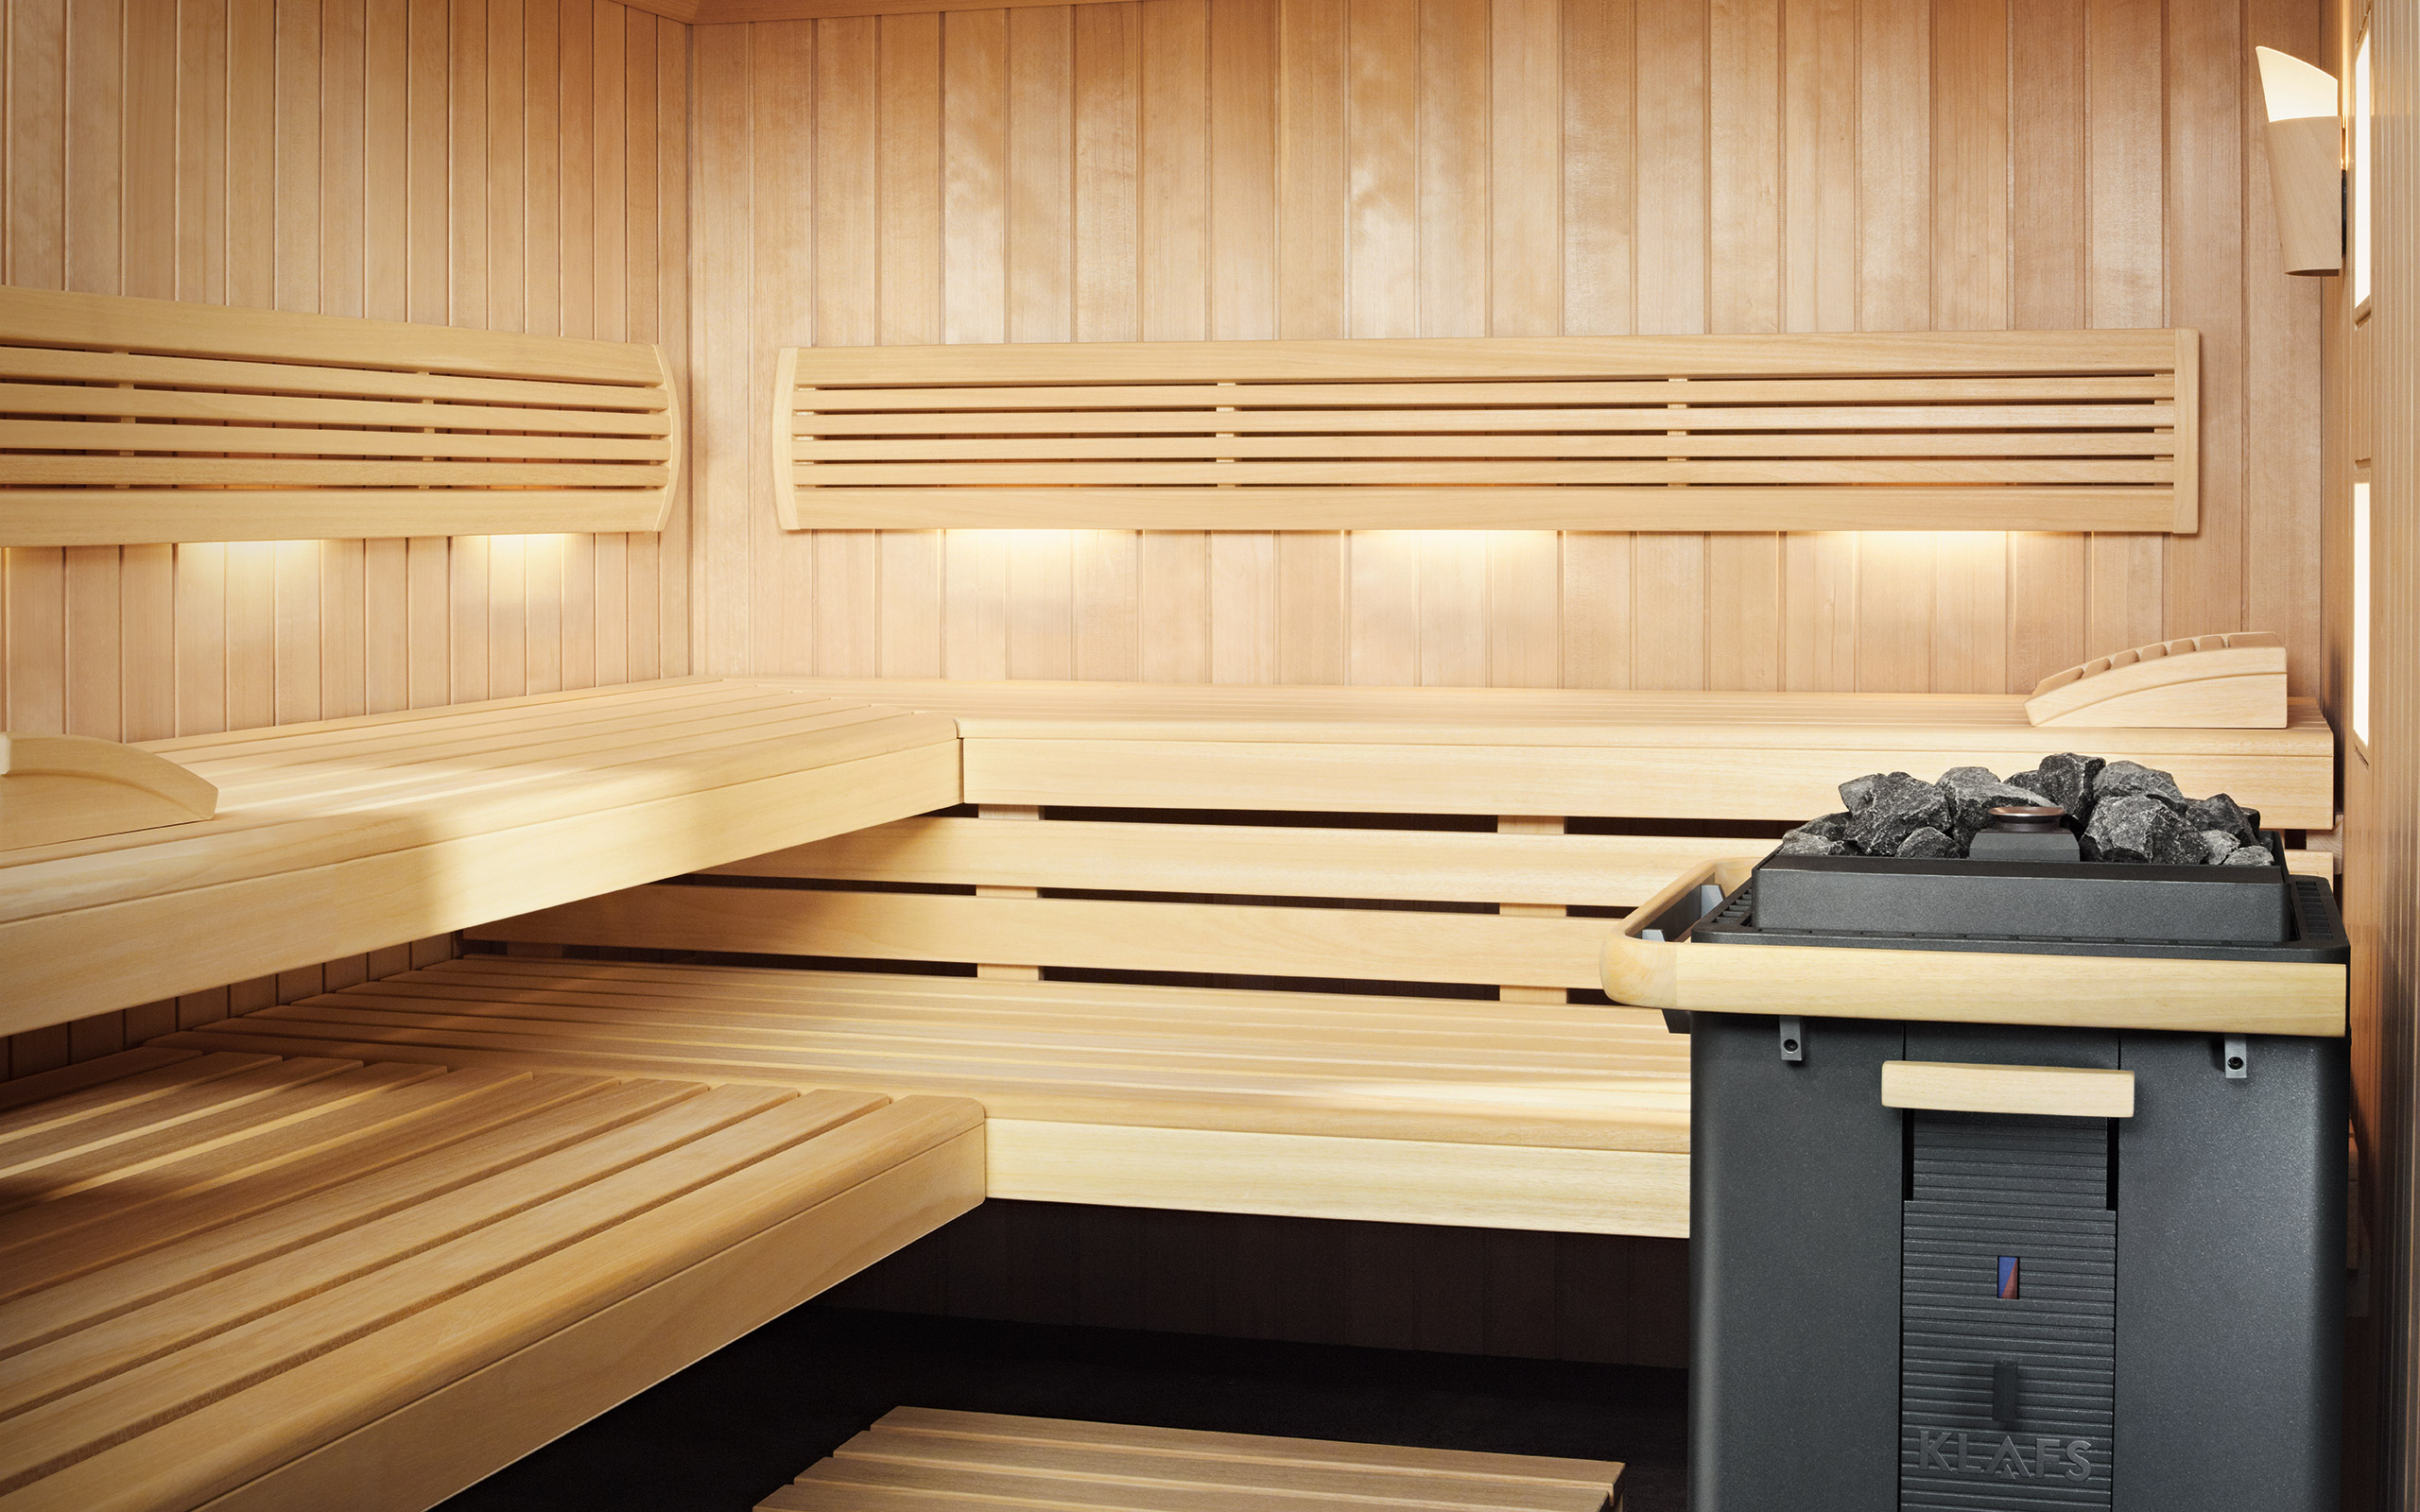 sauna und sanarium fen modell bersicht klafs. Black Bedroom Furniture Sets. Home Design Ideas